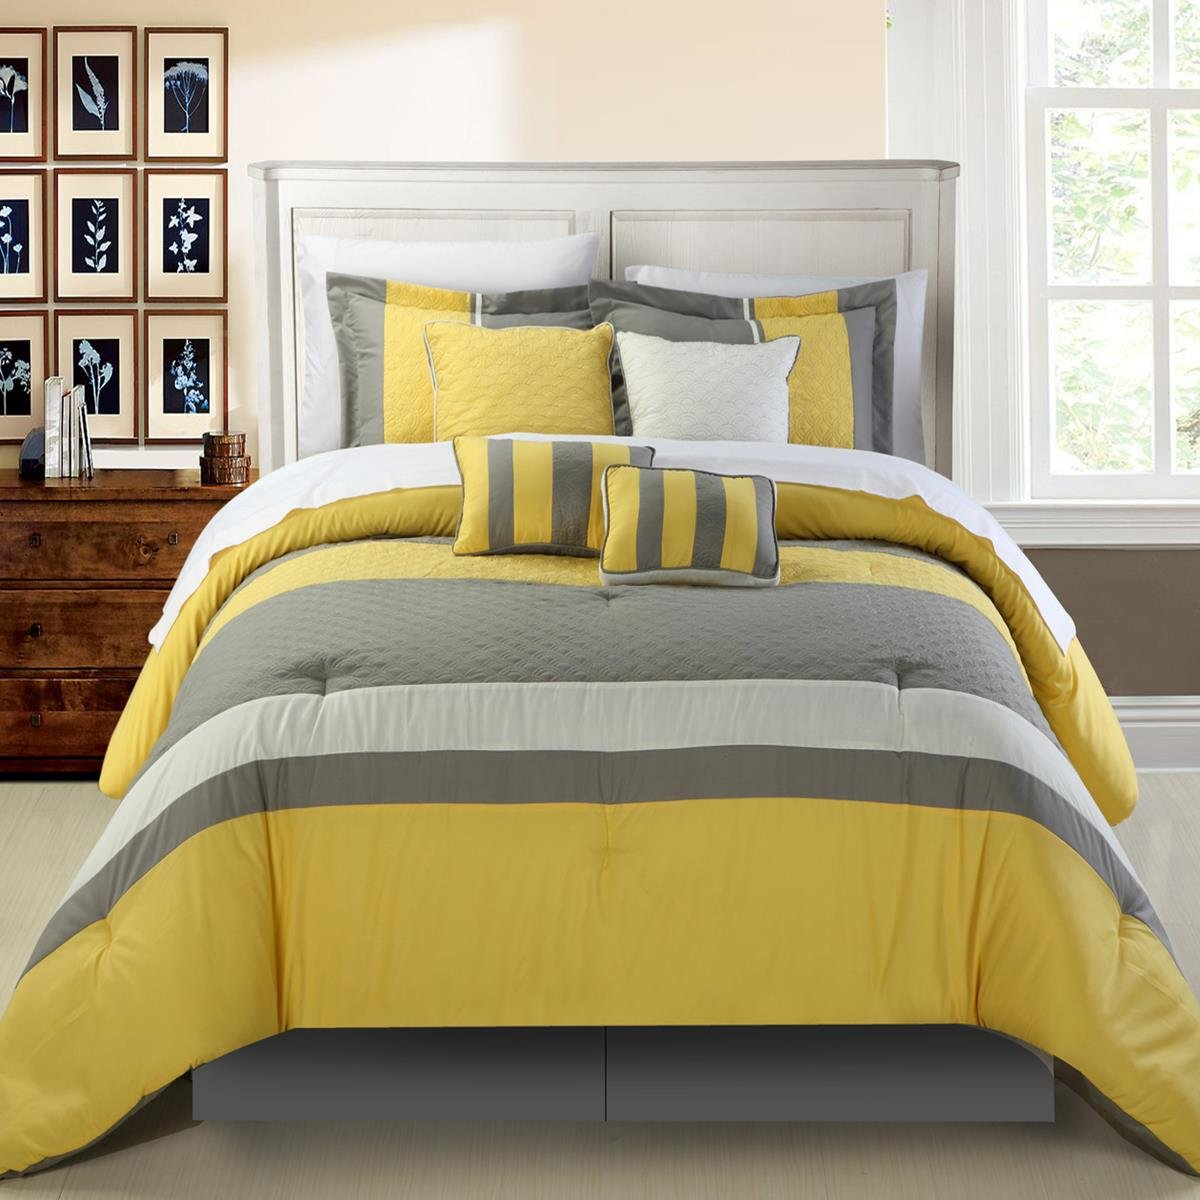 Image Result For Yellow And Gray Quilt Sets